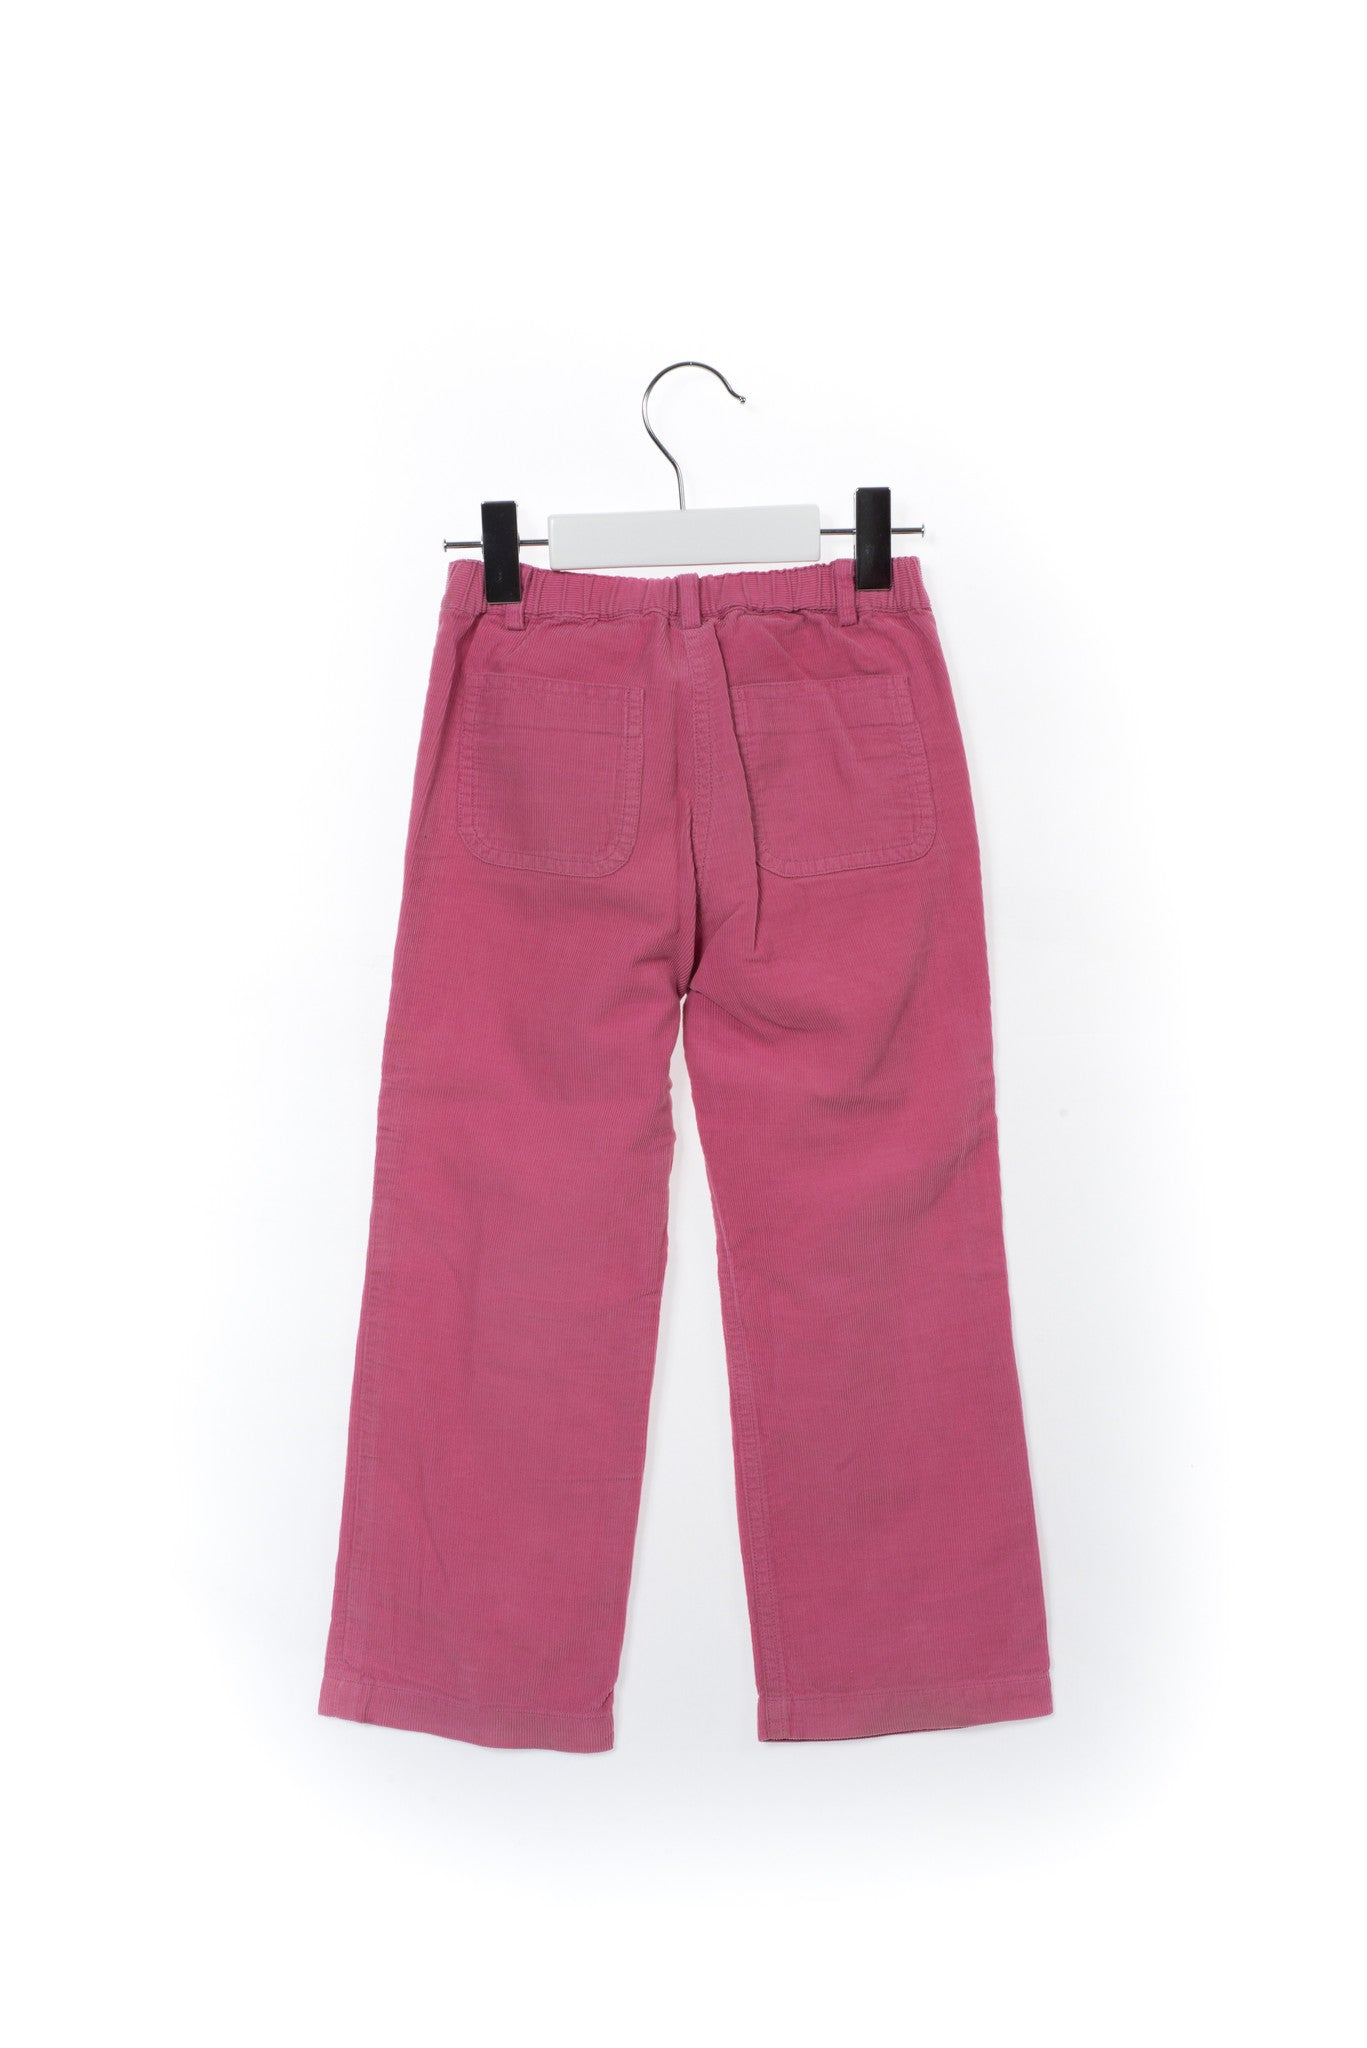 10001023 Bonton Kids~Pants 4T at Retykle